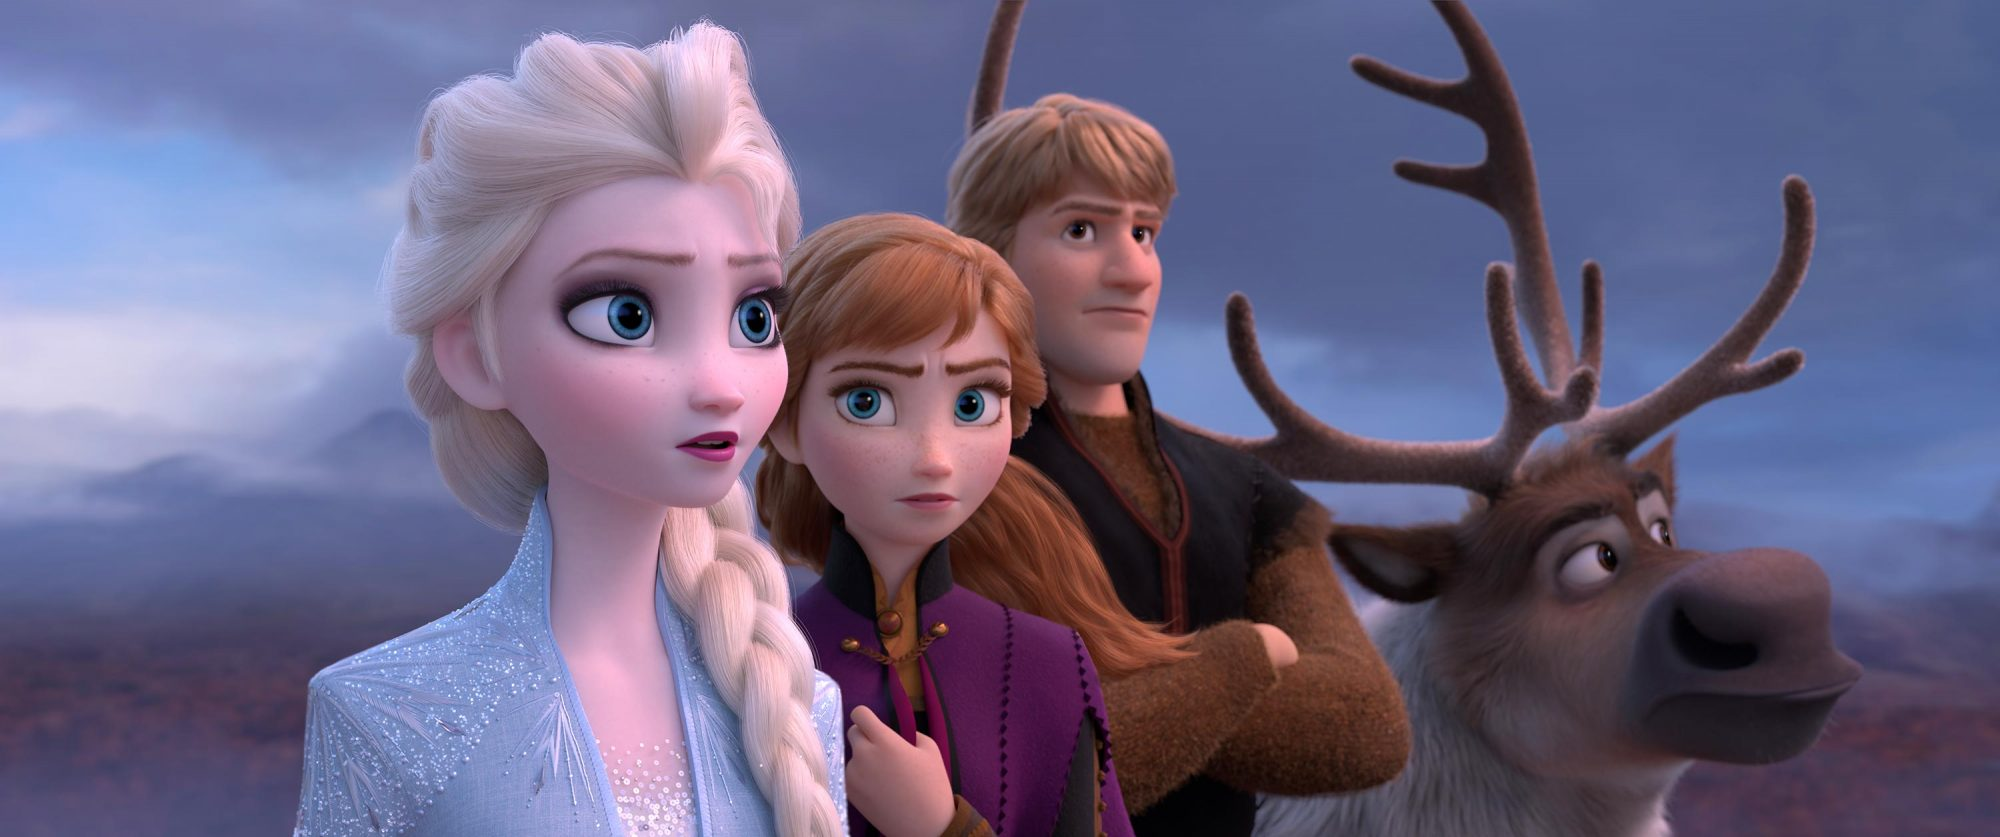 Anna and Elsa return in first teaser for Frozen 2 frozen2_online-use_trailer1_final_formatted